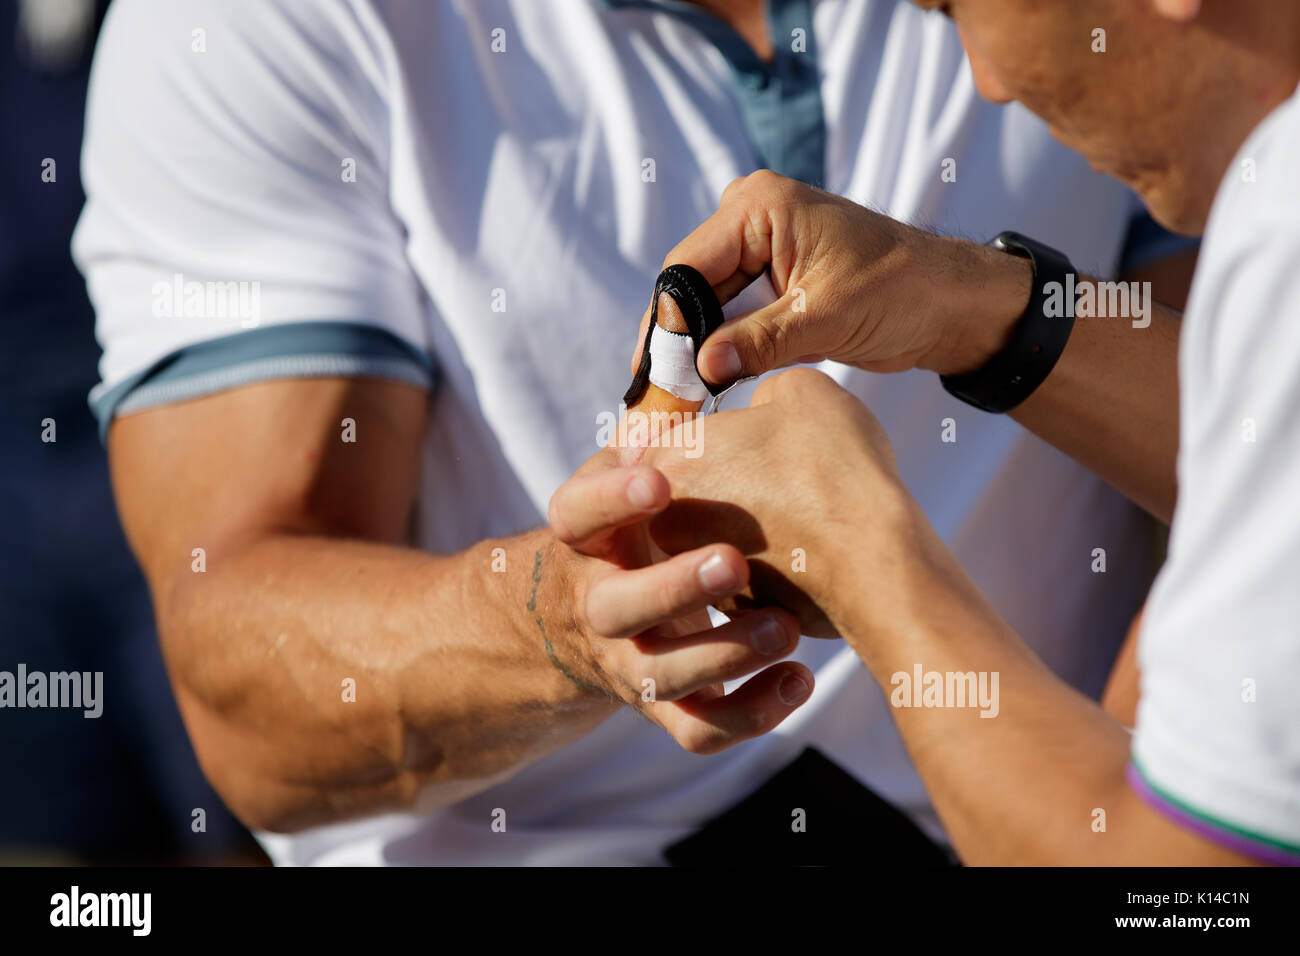 Gustavo Fernandez of Argentina has his thumb attended to by a medic at the Gentlemen's Wheelchair Doubles - Wimbledon Championships 2017 - Stock Image